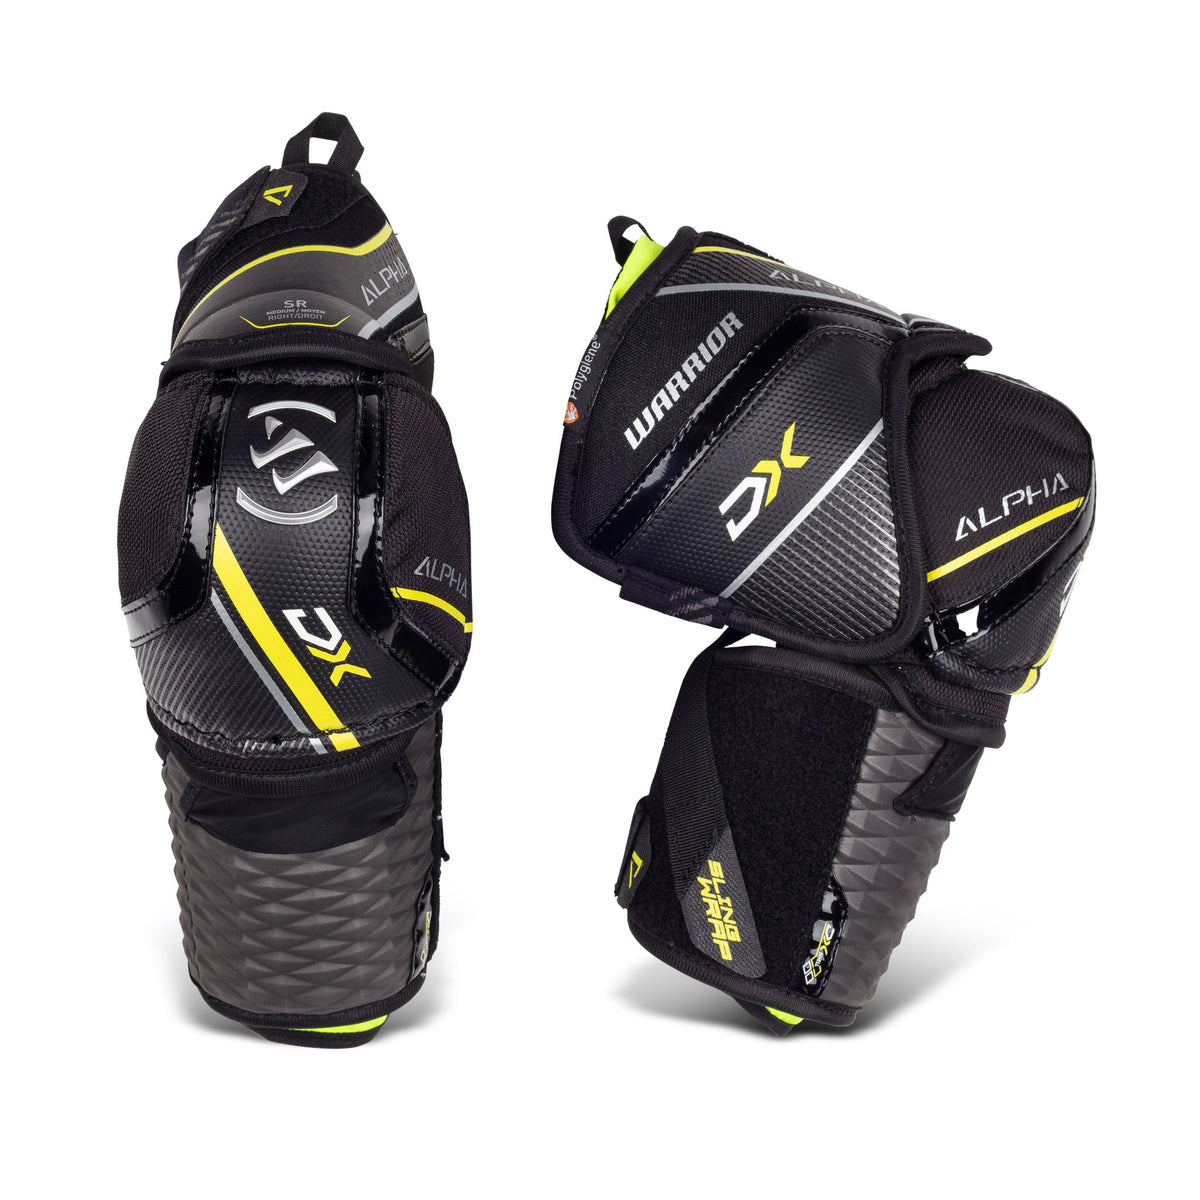 Warrior Alpha DX Senior Elbow Pads